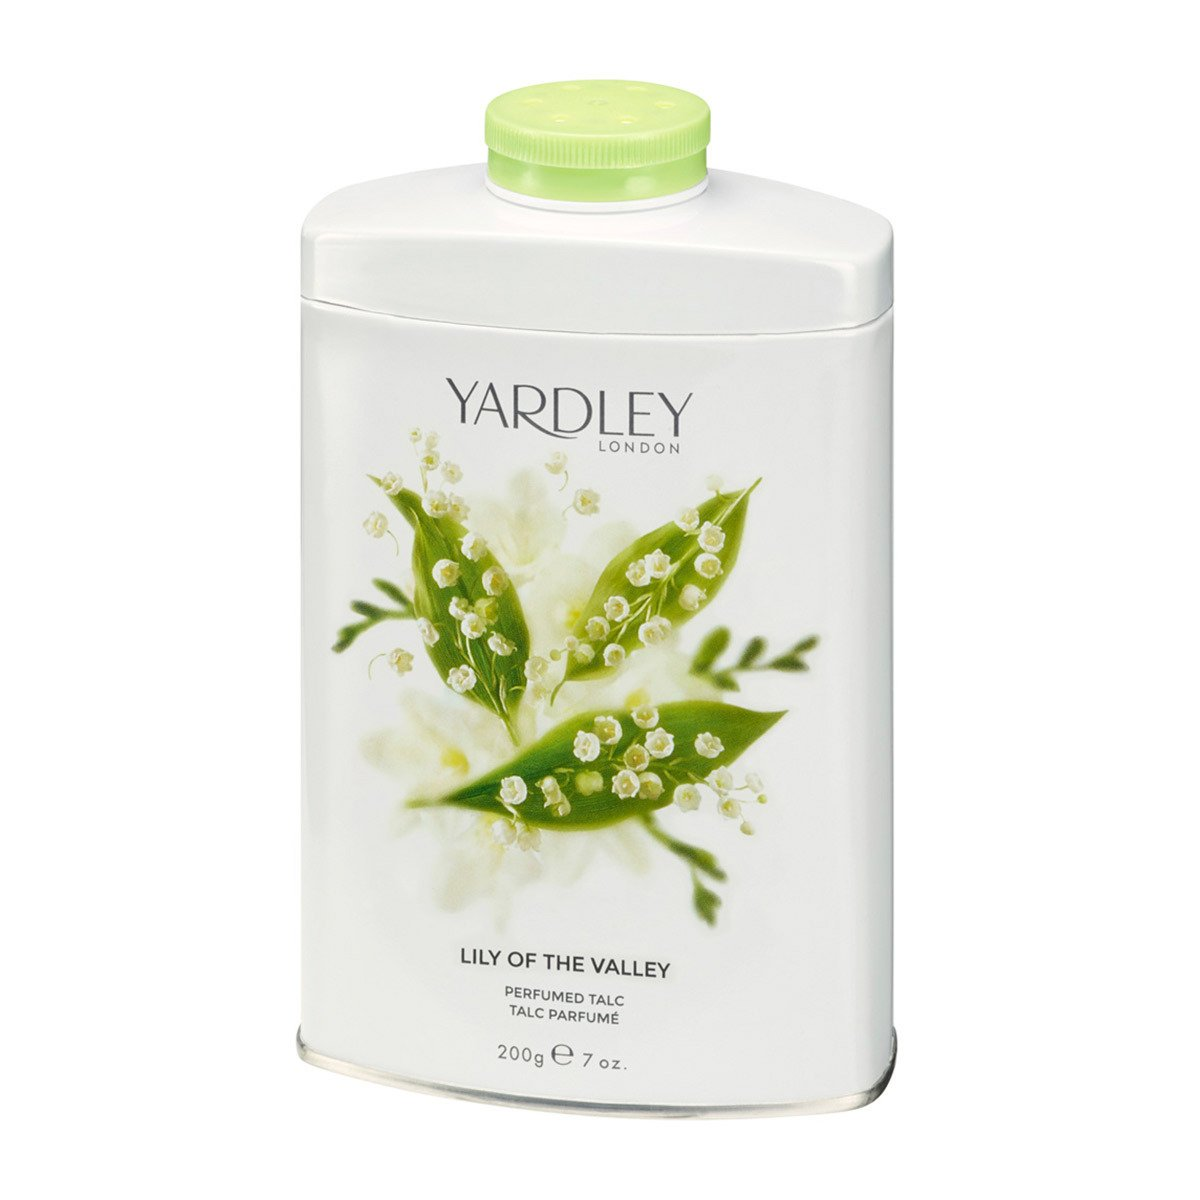 Yardley of London Lily of the Valley 7.0 oz Perfumed Talc